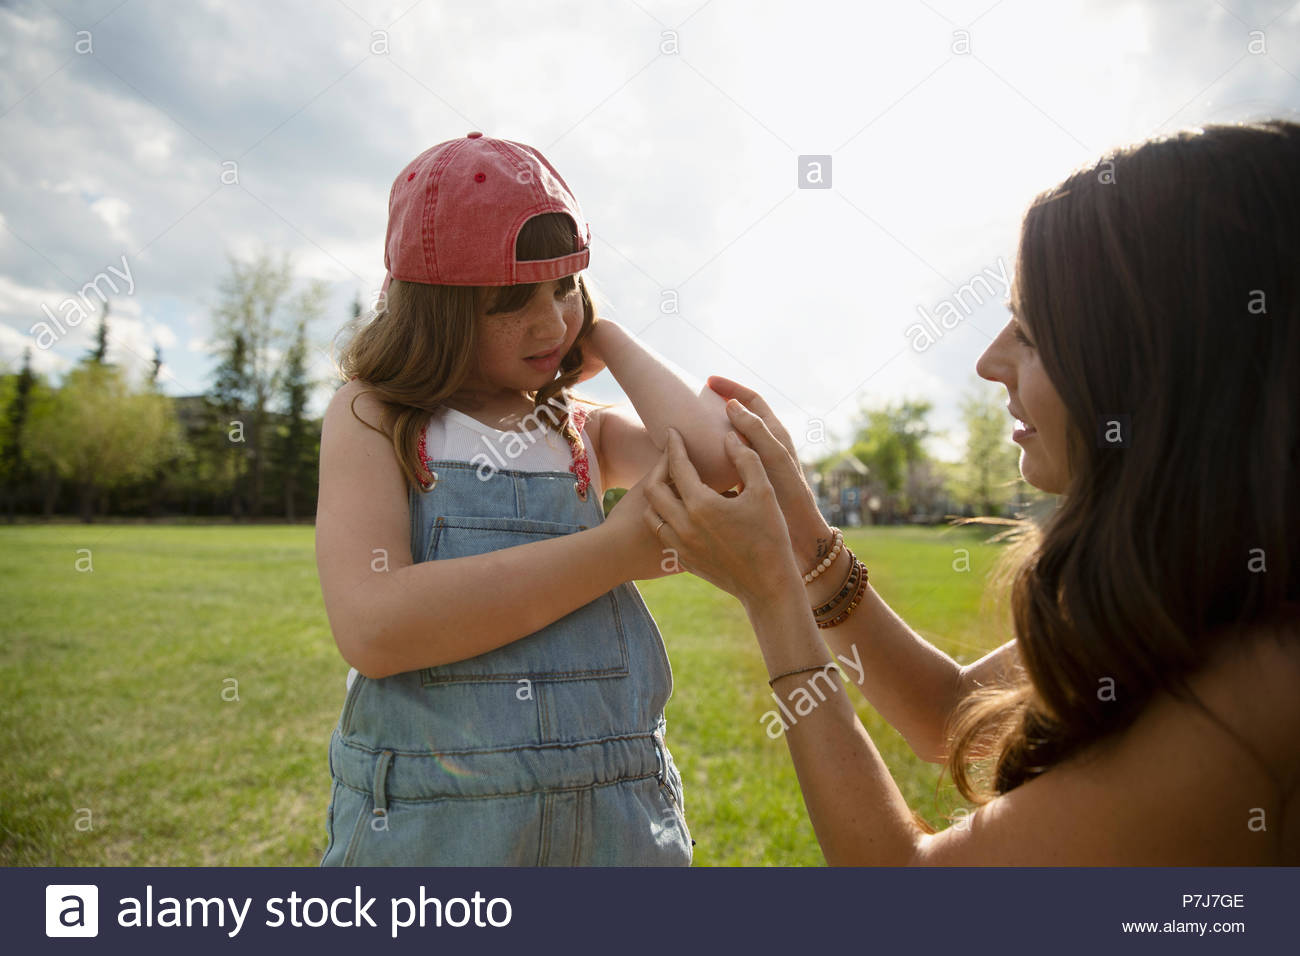 Mother checking injury on daughters elbow in park - Stock Image